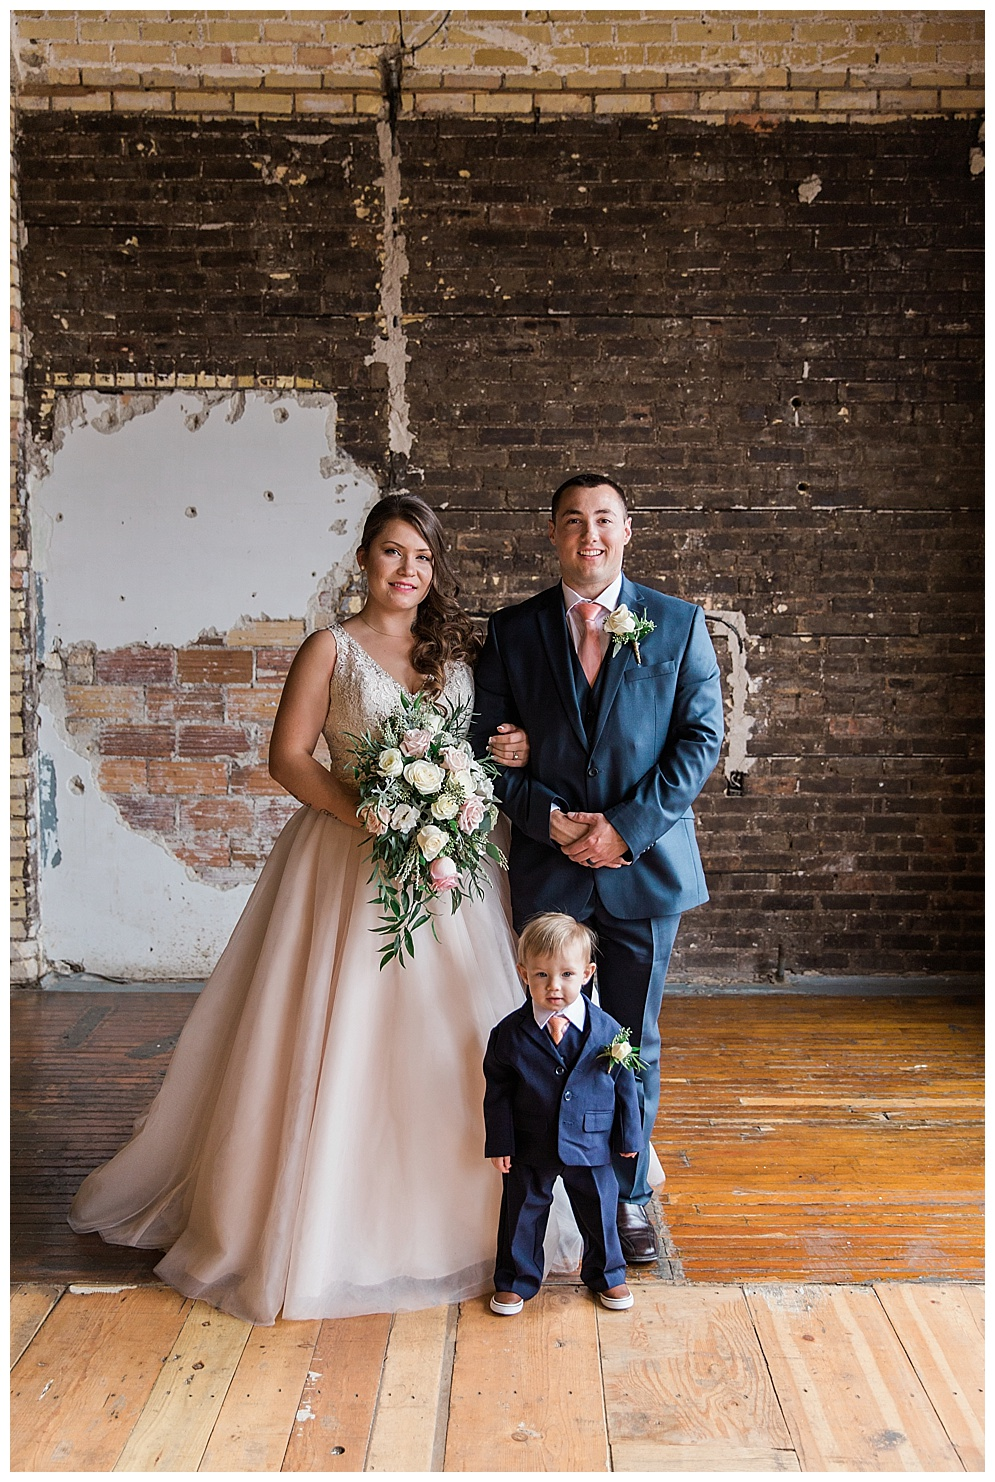 If you follow me on social media, this little guy is probably a familiar face. My nephew Corbin is an adorable monster. He made their wedding so much more enjoyable with his cute smile, wild personality, and contagious laugh.